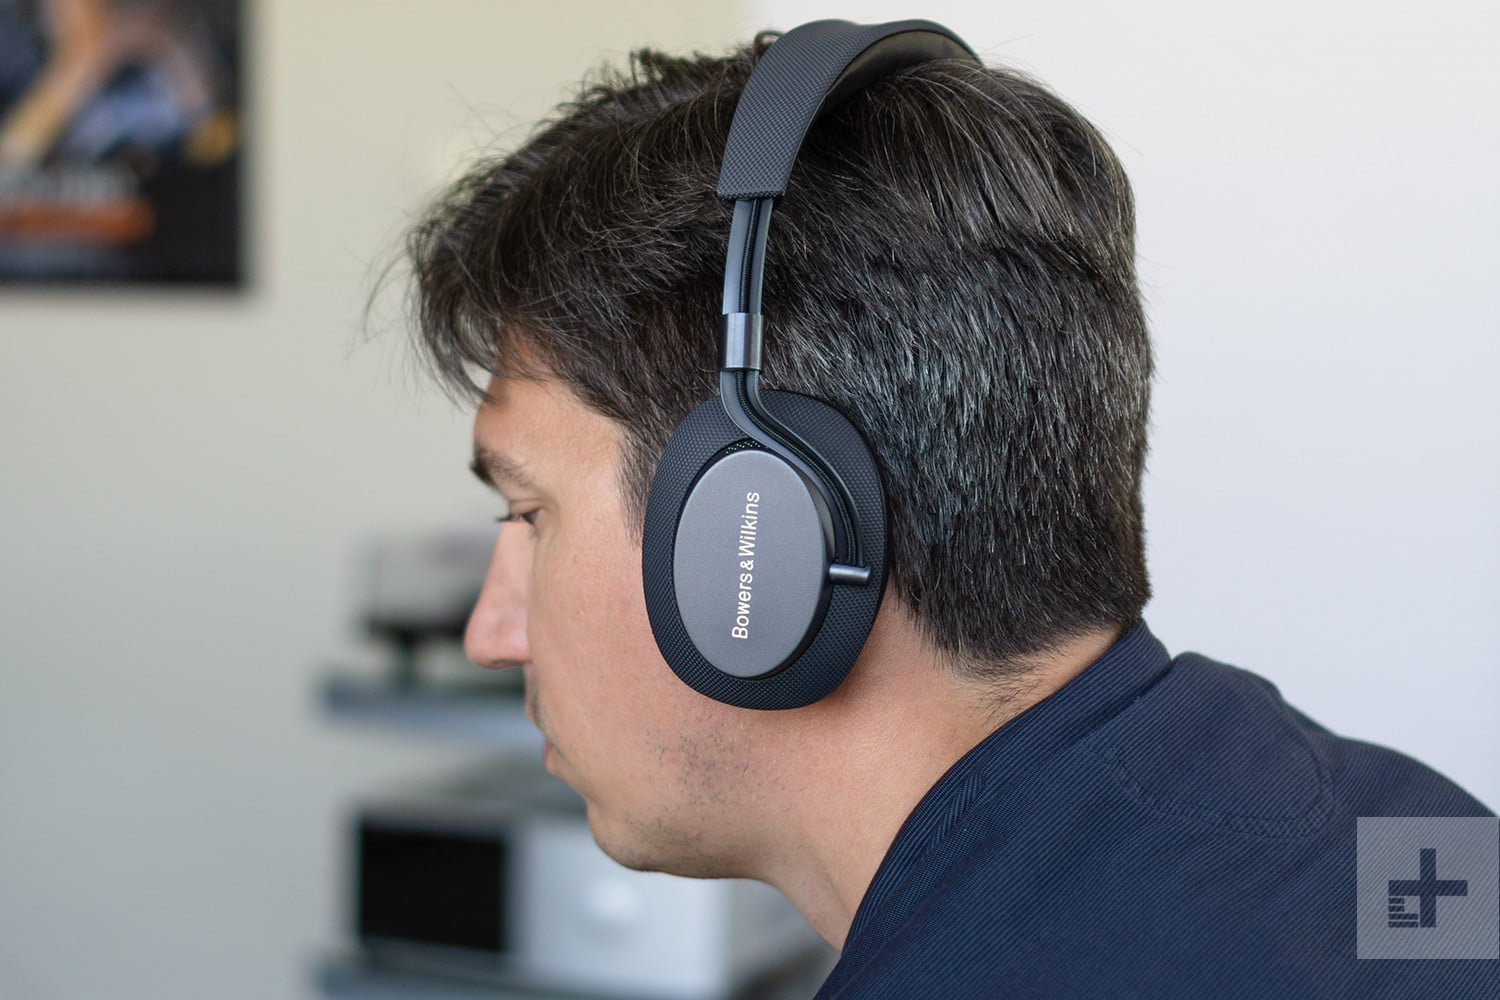 reputable site 337b3 f2ad0 These Noise-Canceling Headphones Are a Must-Have at This Price ...